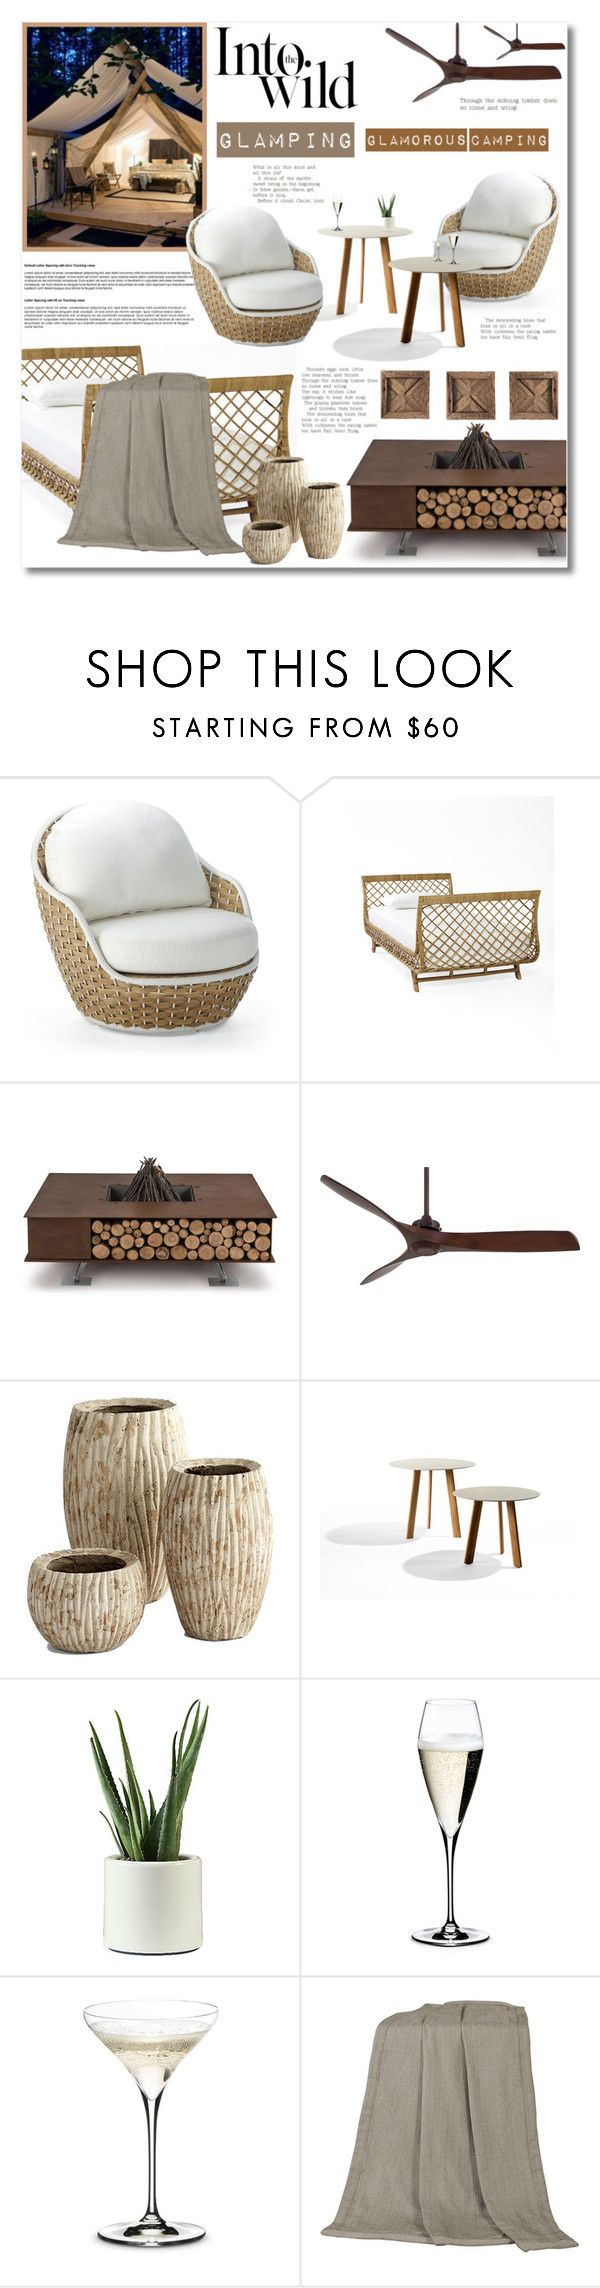 best 25 home shopping catalogues ideas only on pinterest ikea